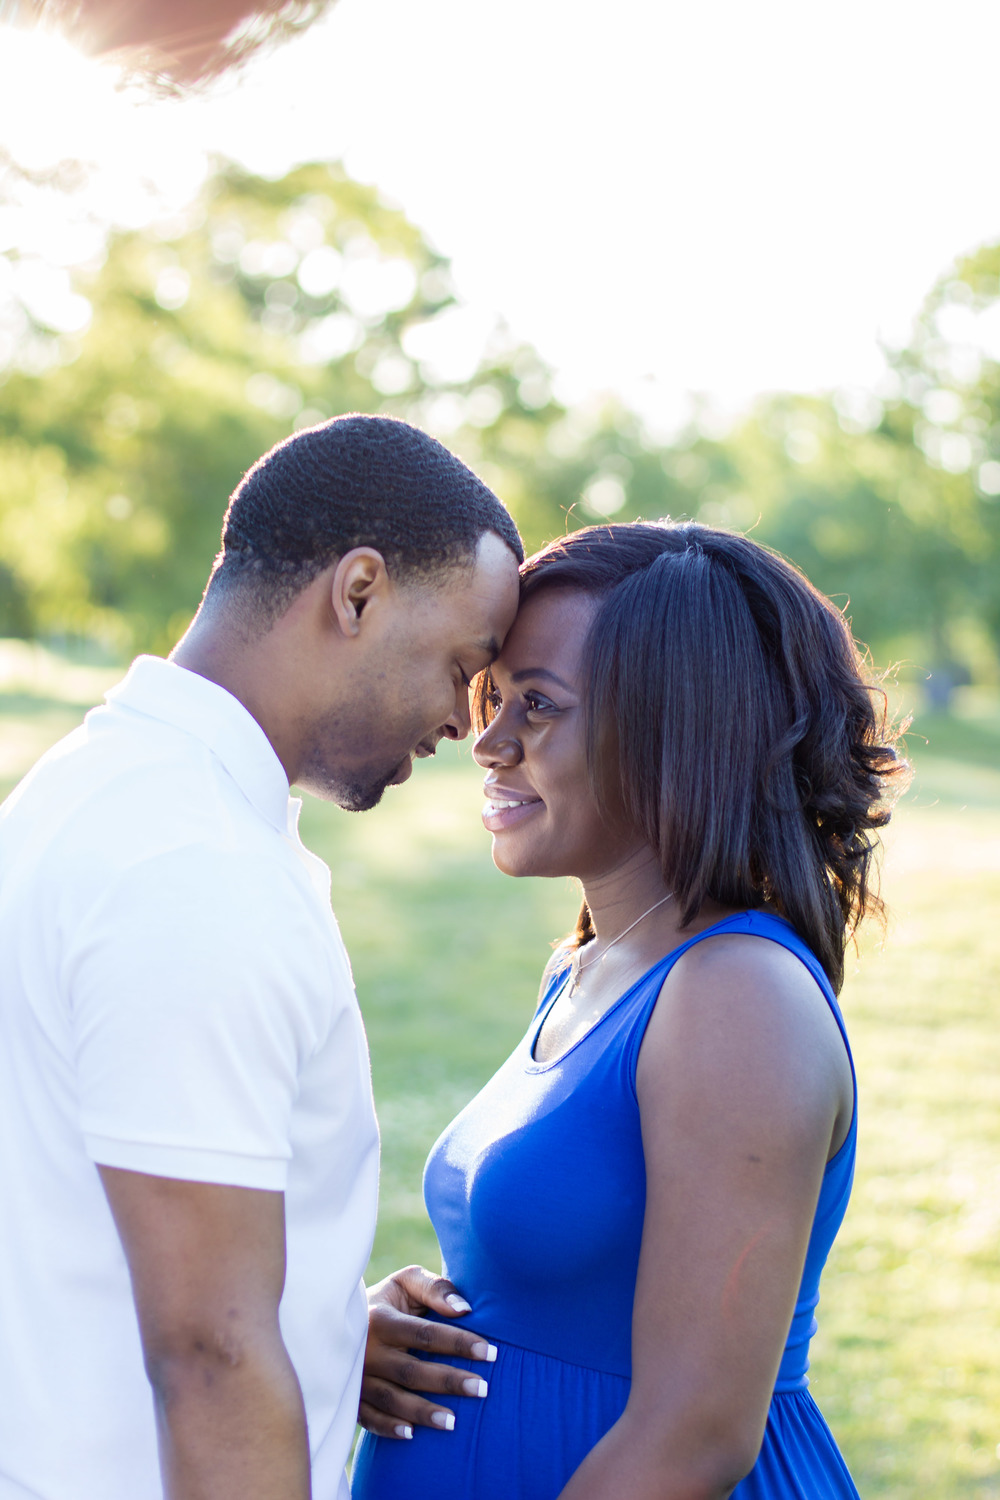 Greenville NC Maternity Portraits | Bryant Tyson Photography | Jessica + Eman | www.memoriesbybryant